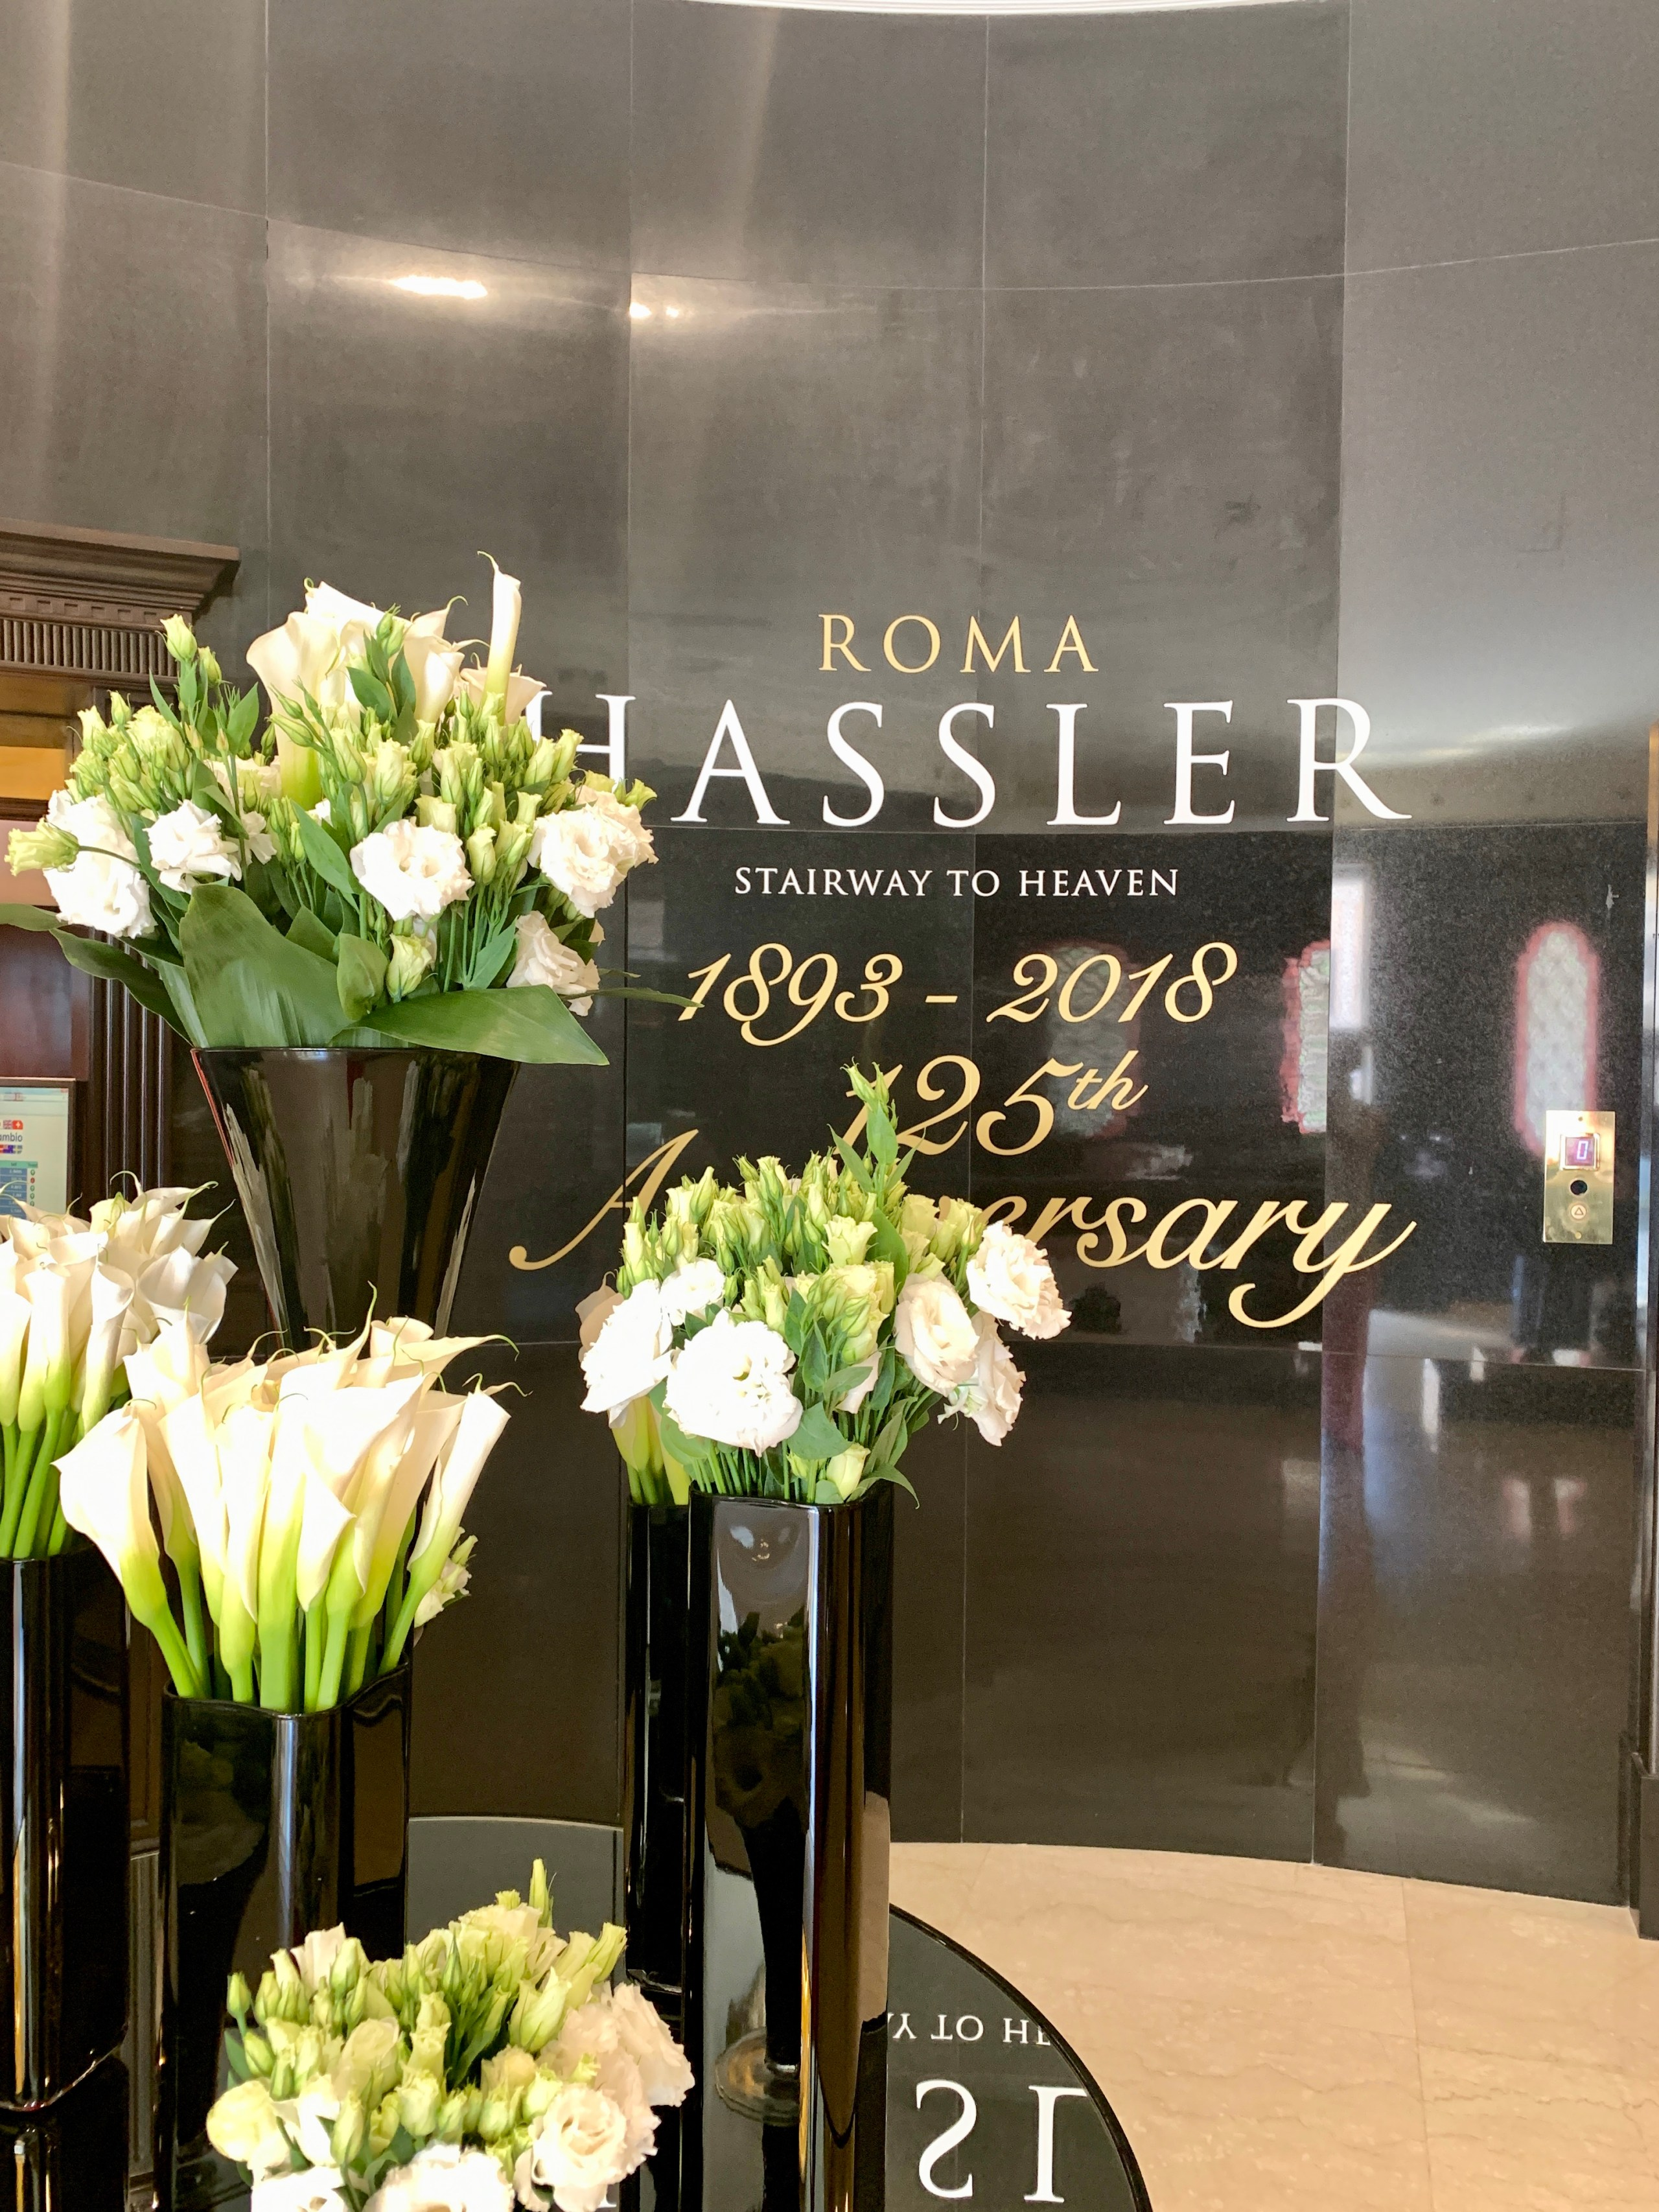 The Hassler Hotel Lobby